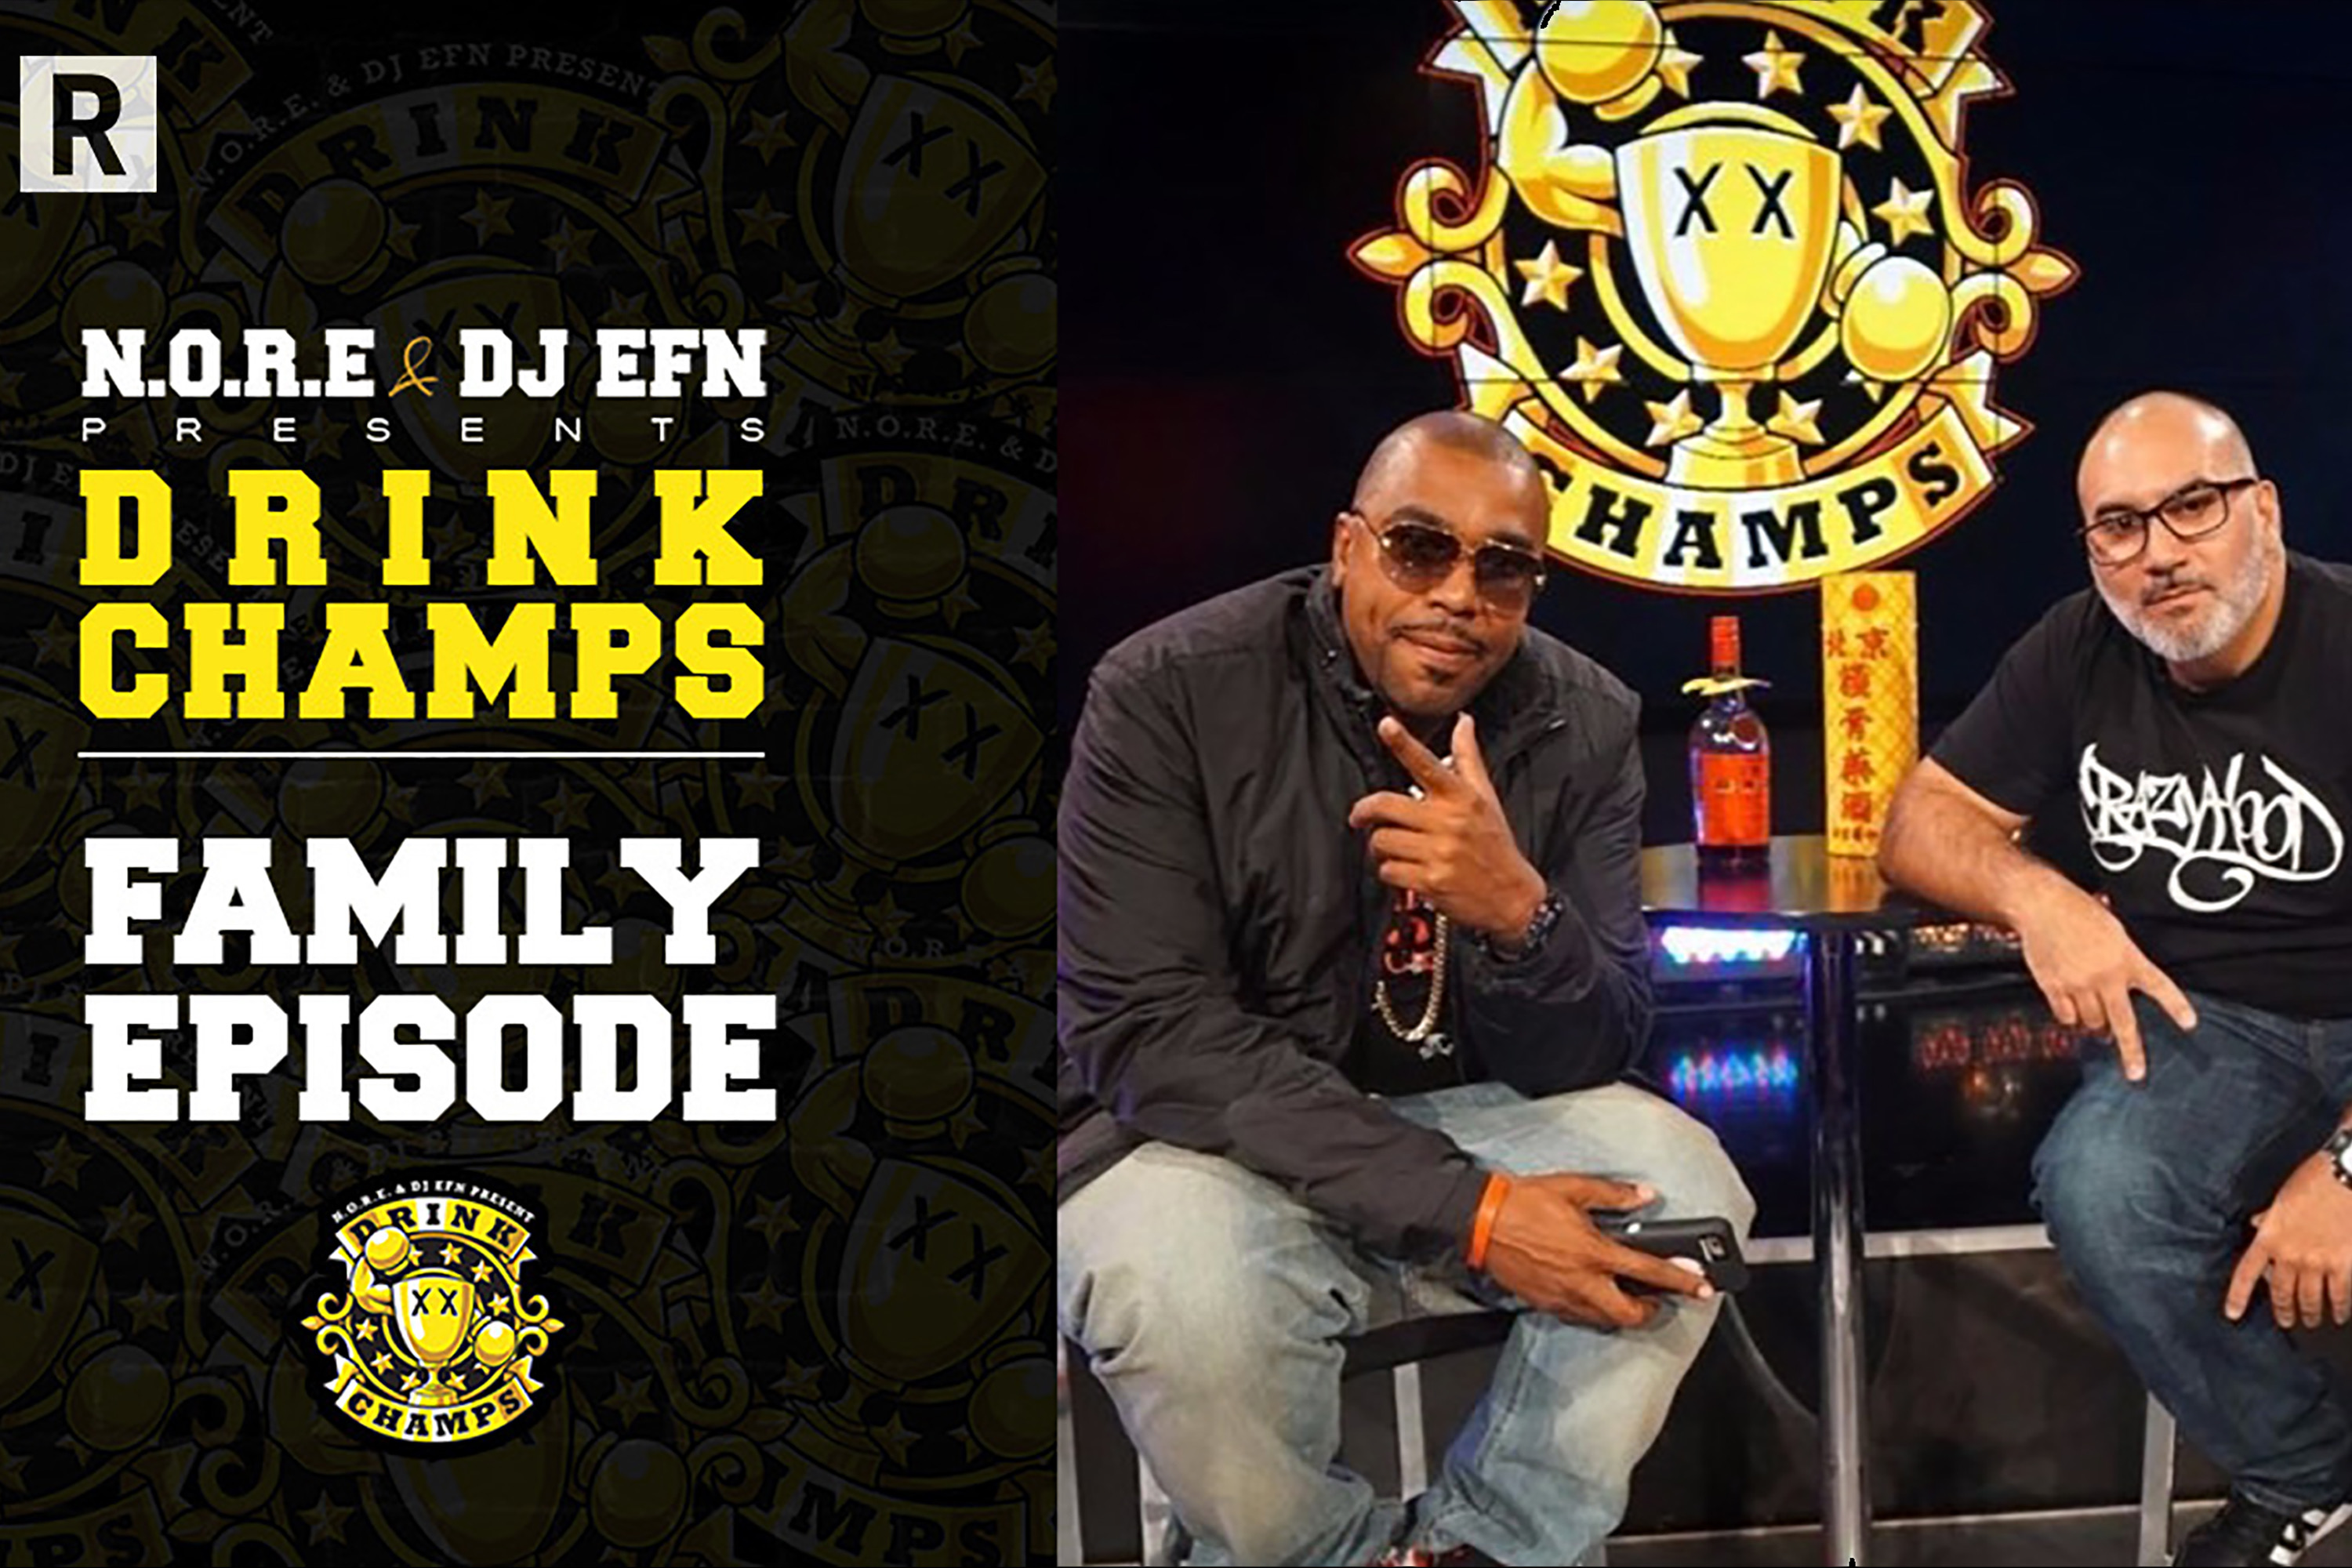 Drink Champs - Family Episode